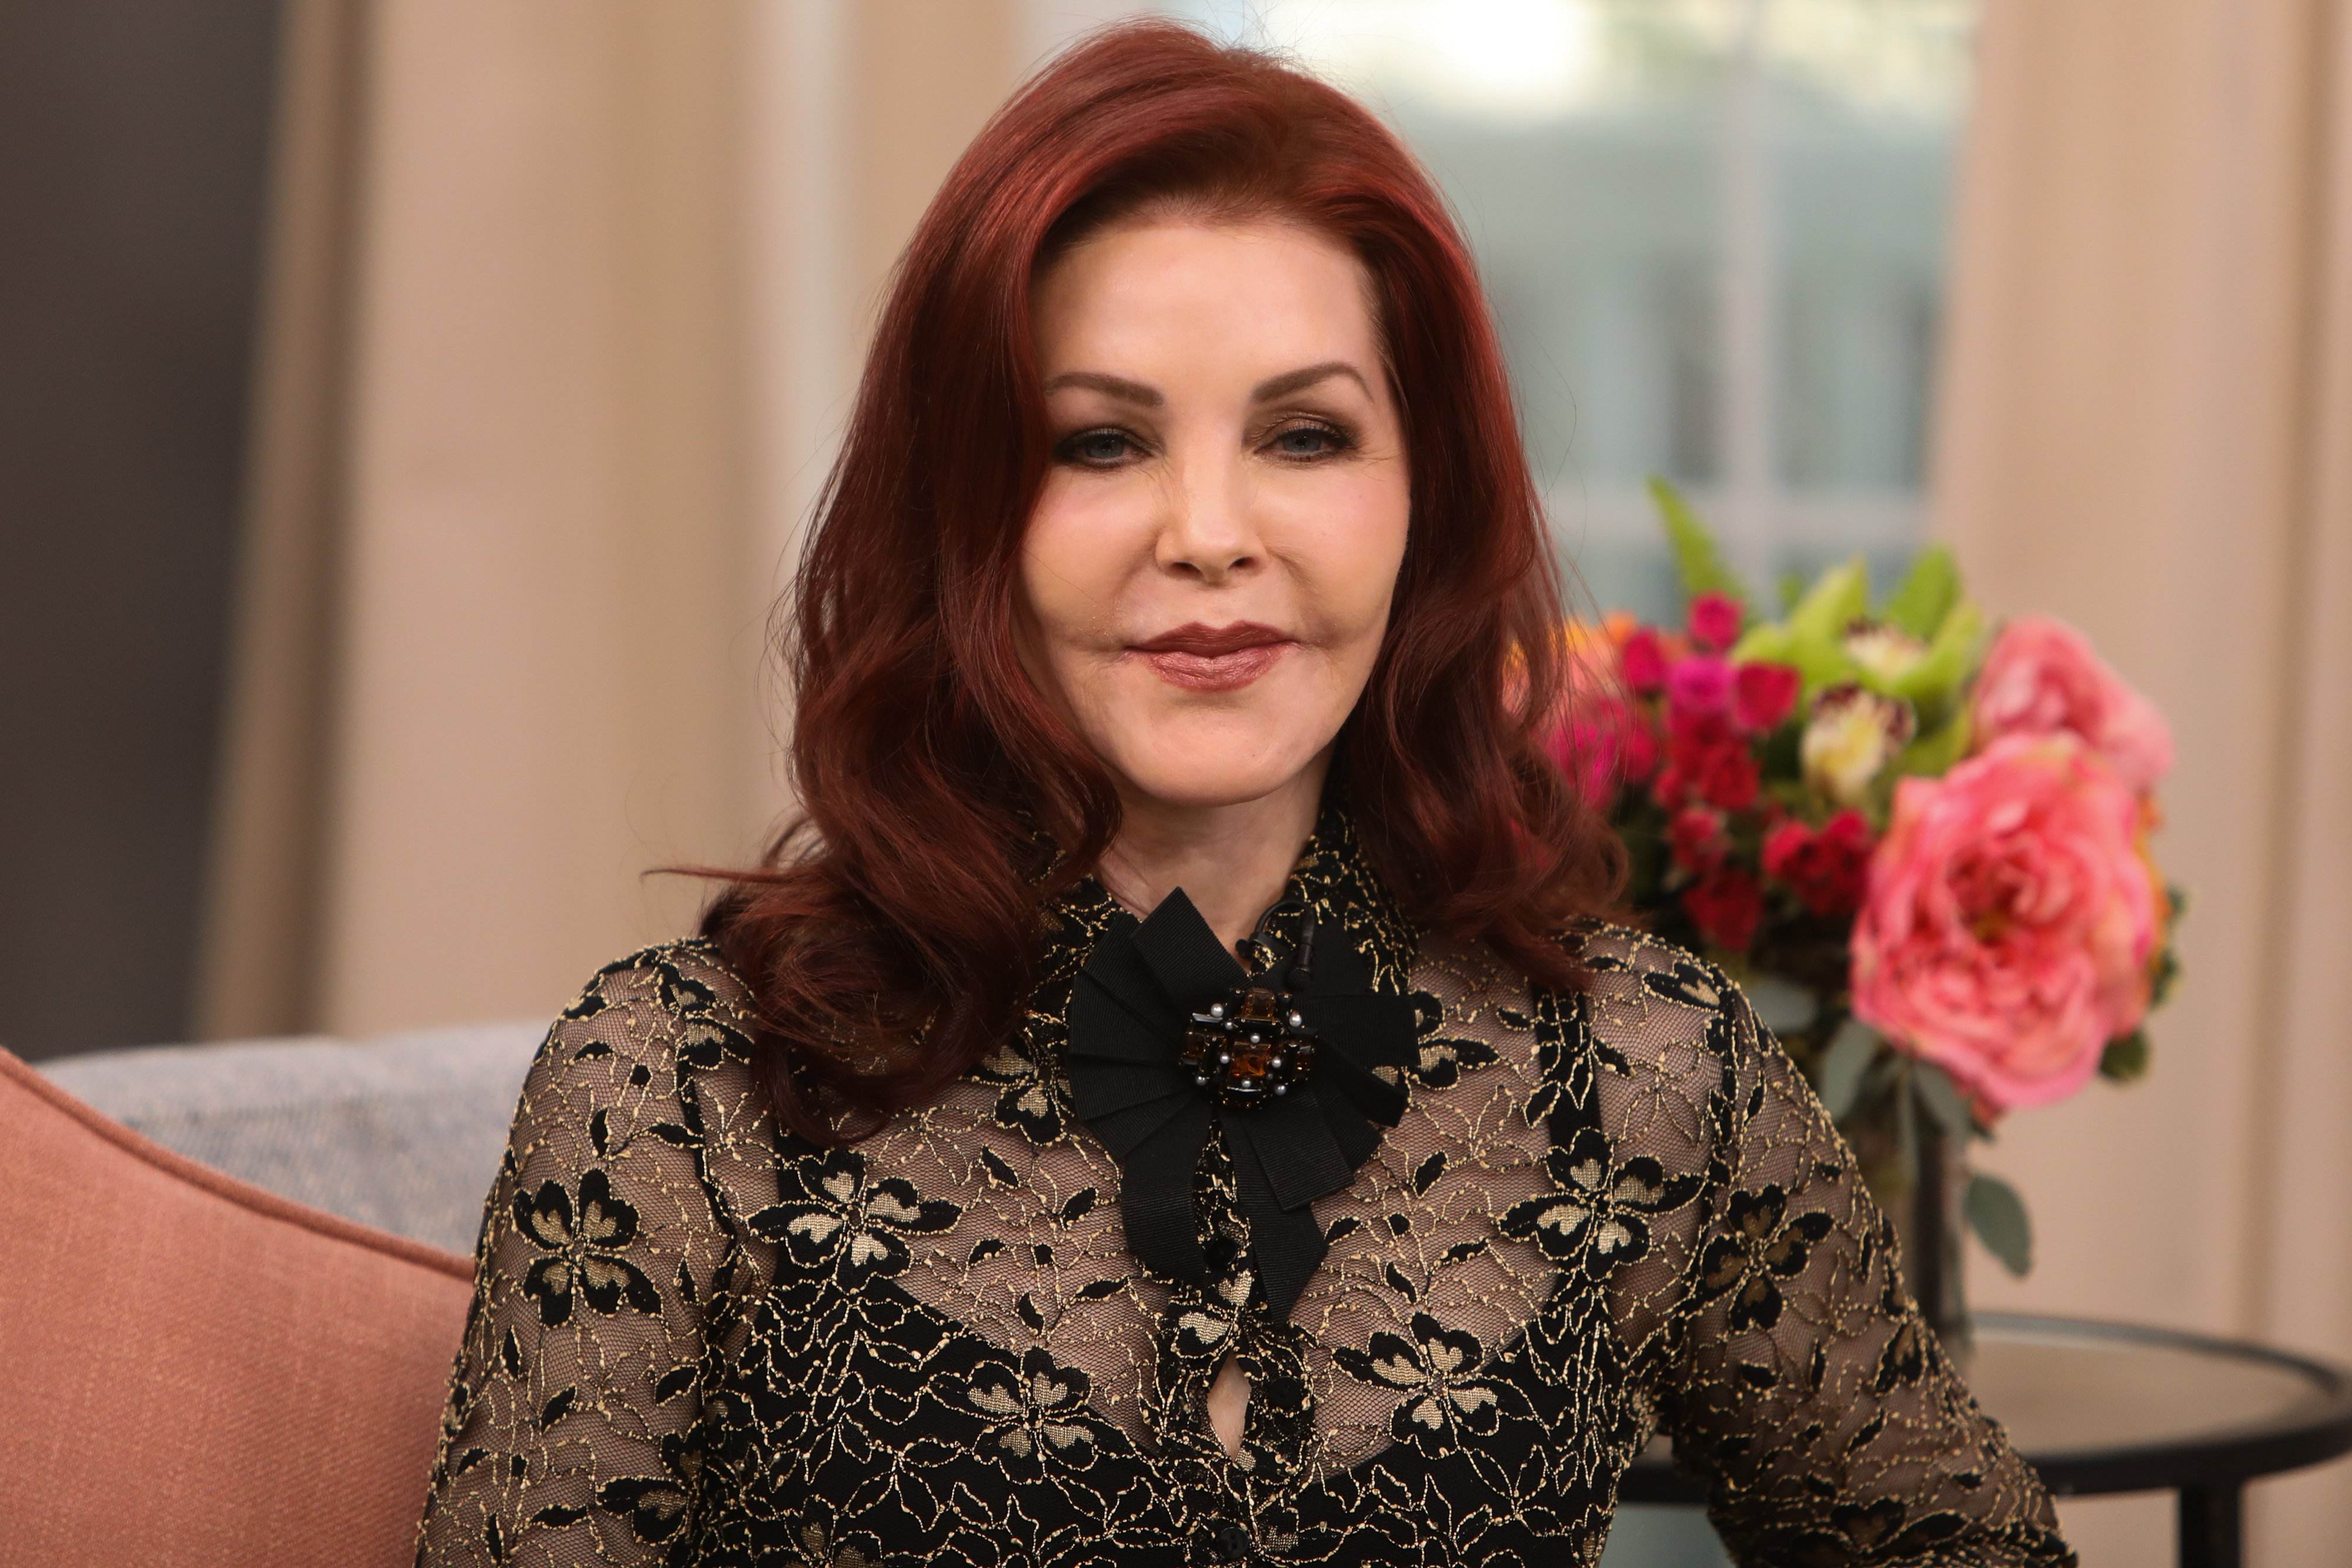 """Actress Priscilla Presley visits Hallmark Channel's """"Home & Family"""" at Universal Studios Hollywood on February 18, 2020 in Universal City, California   Photo: Getty Images"""